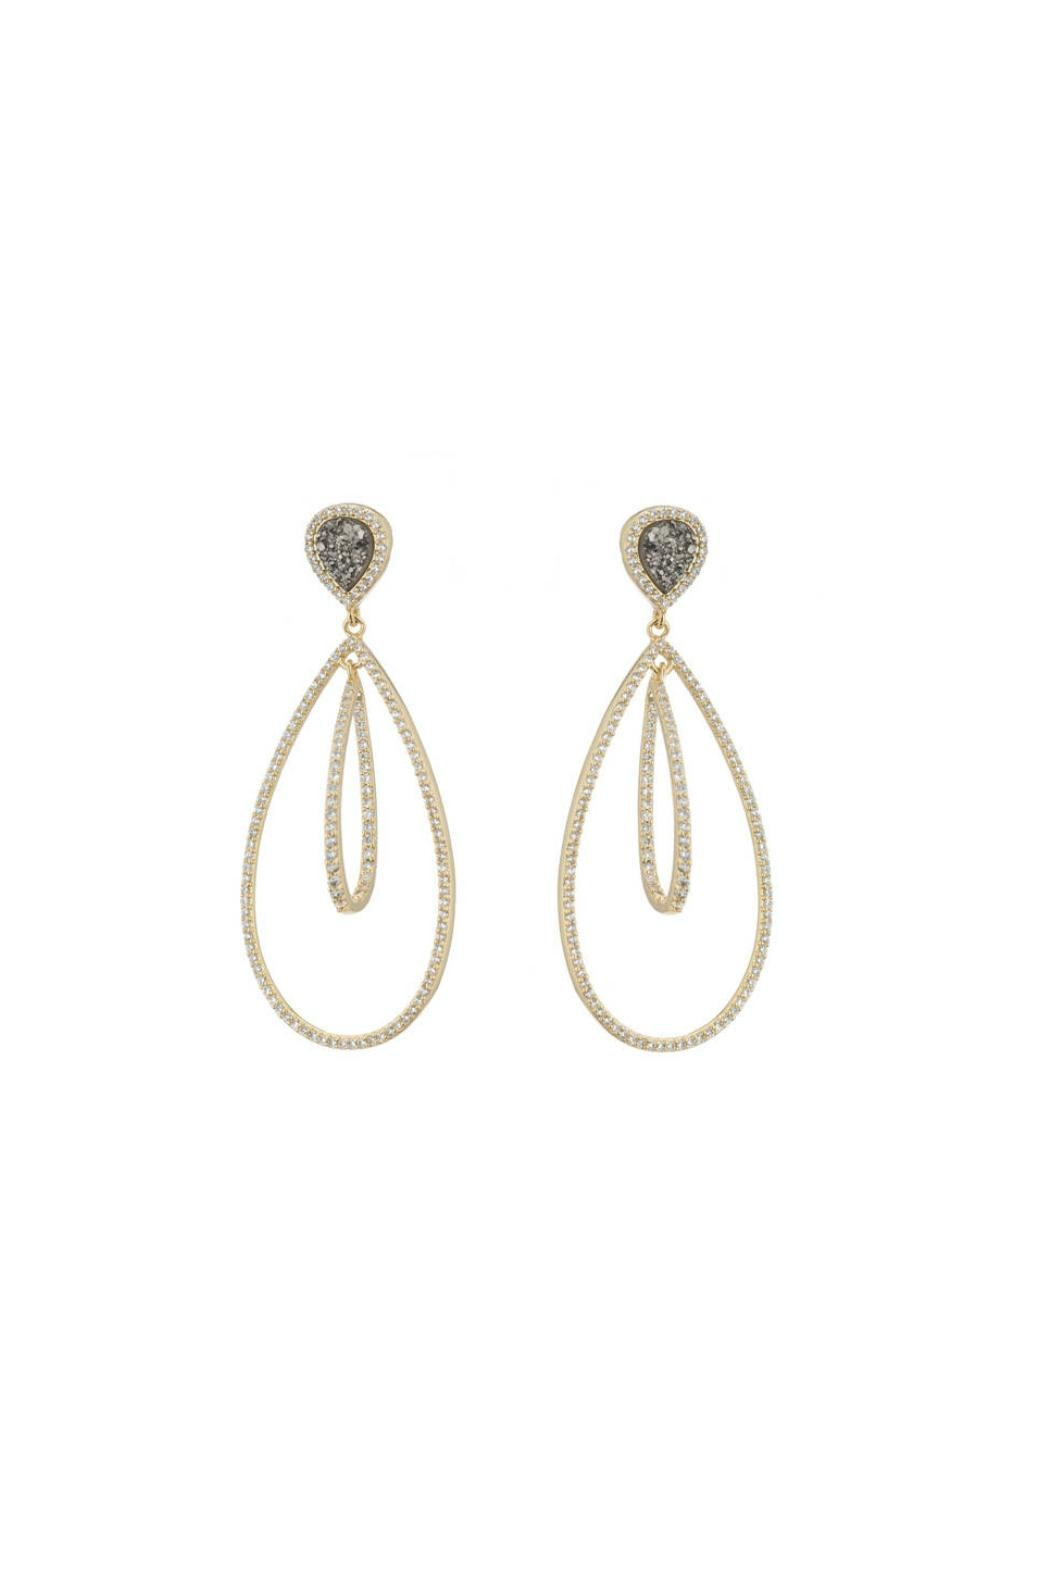 Gemma Collection Druzy Chandelier Earrings - Main Image